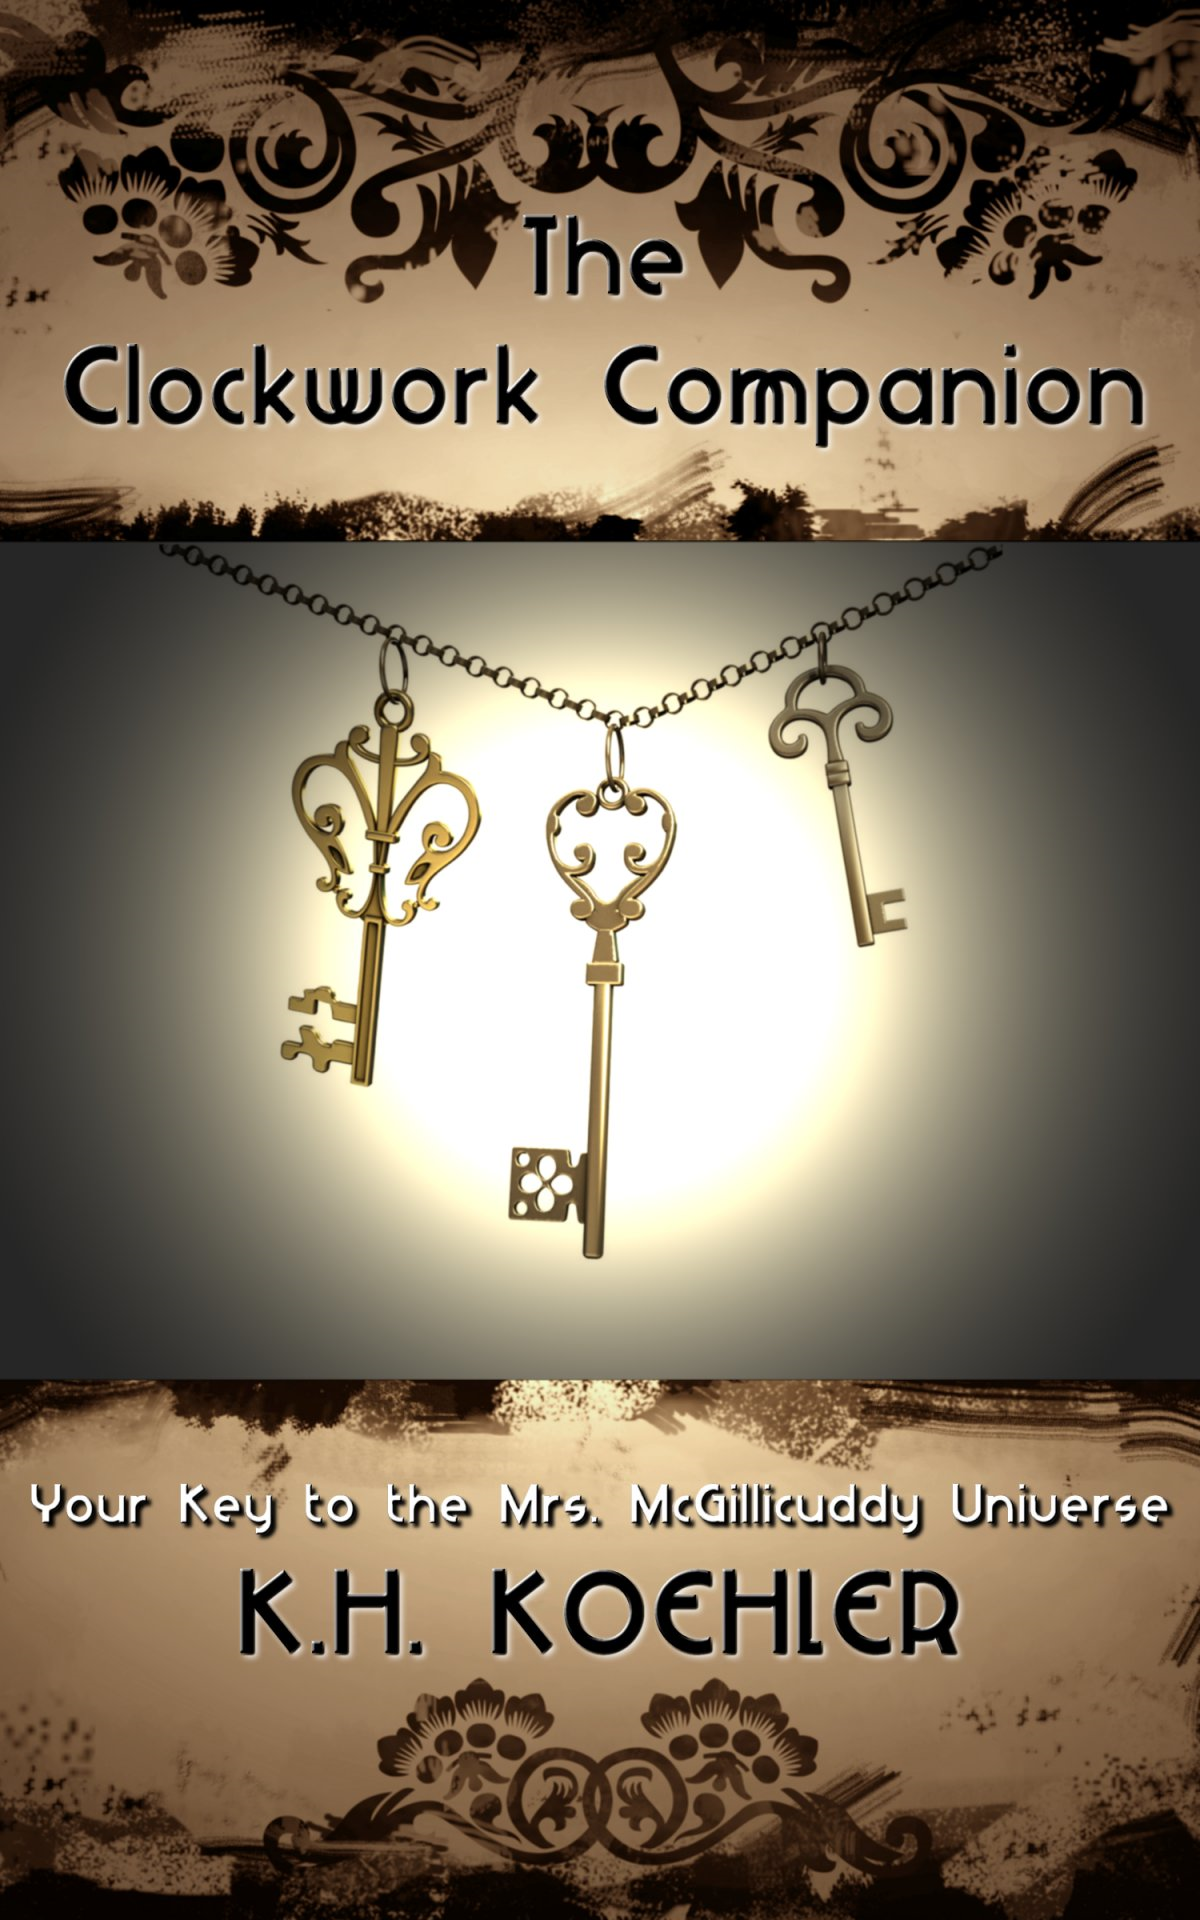 The Clockwork Companion: Your Key to the Mrs. McGillicuddy Universe (Includes an original short story, excerpt, and introduction by Louise Bohmer)